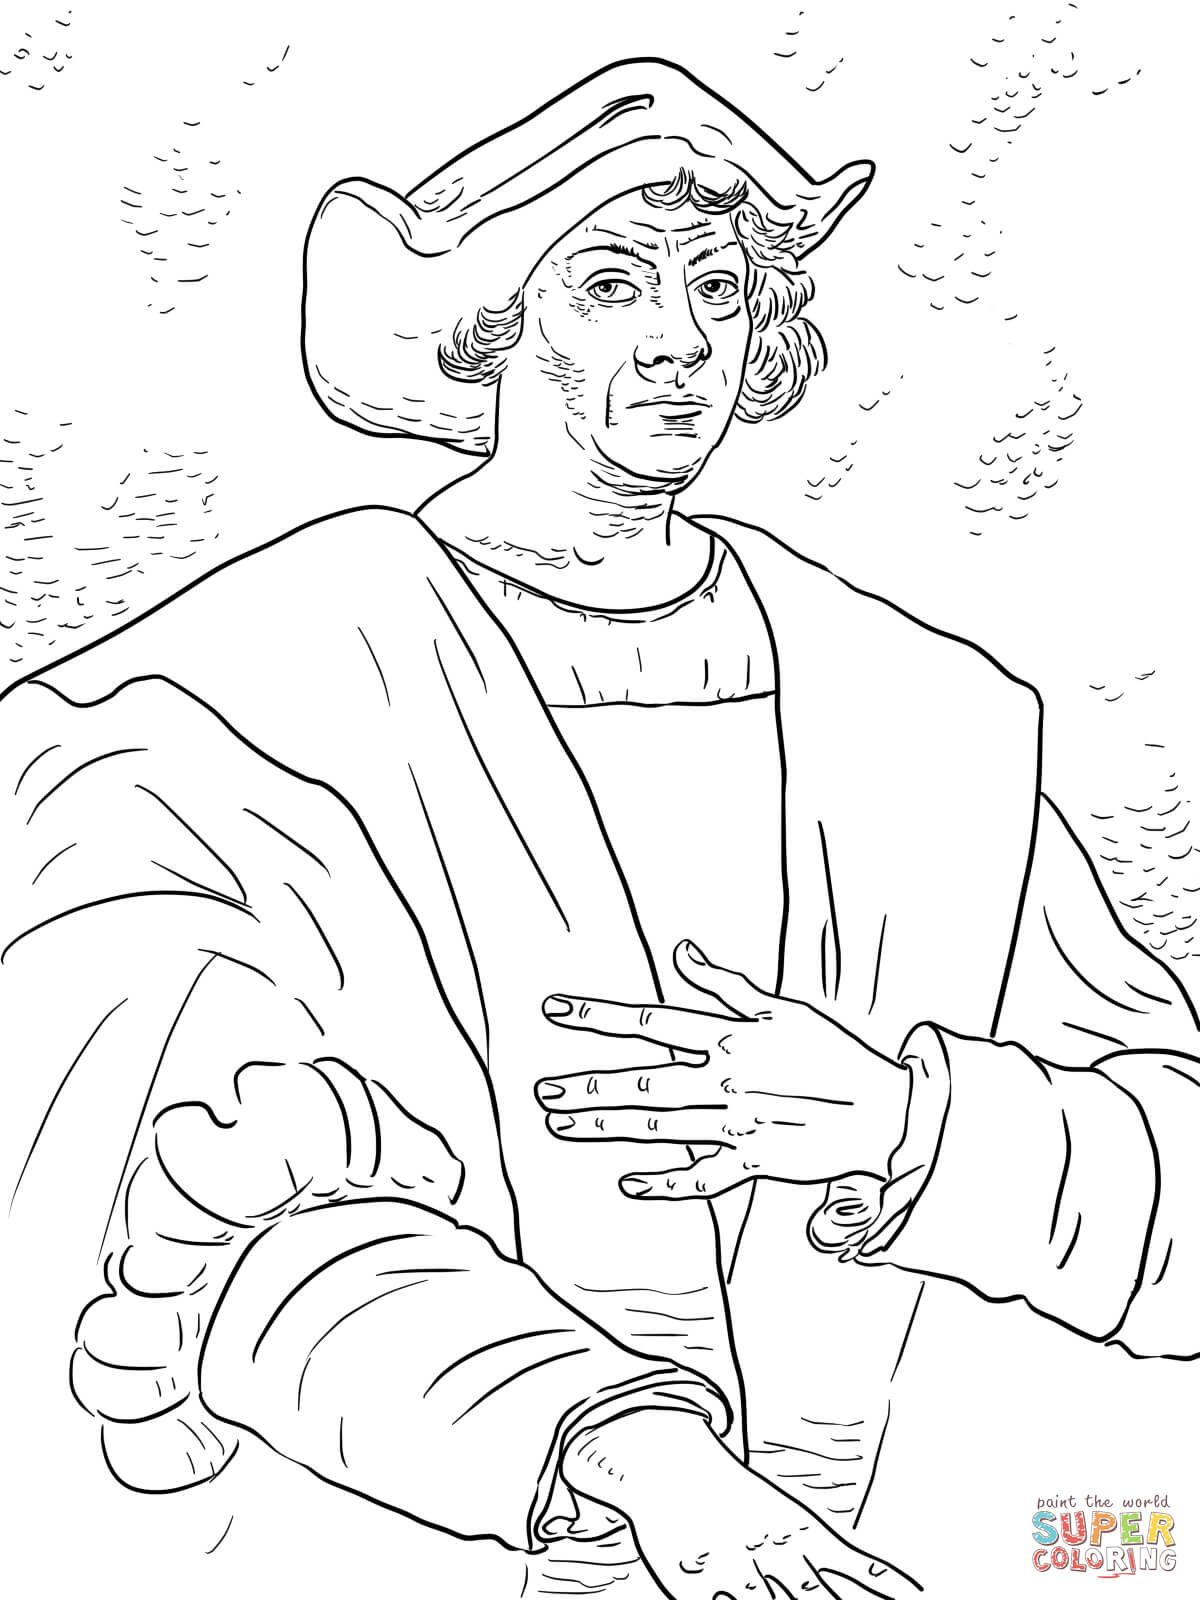 http://colorings.co/christopher-columbus-coloring-pages/ | Colorings ...